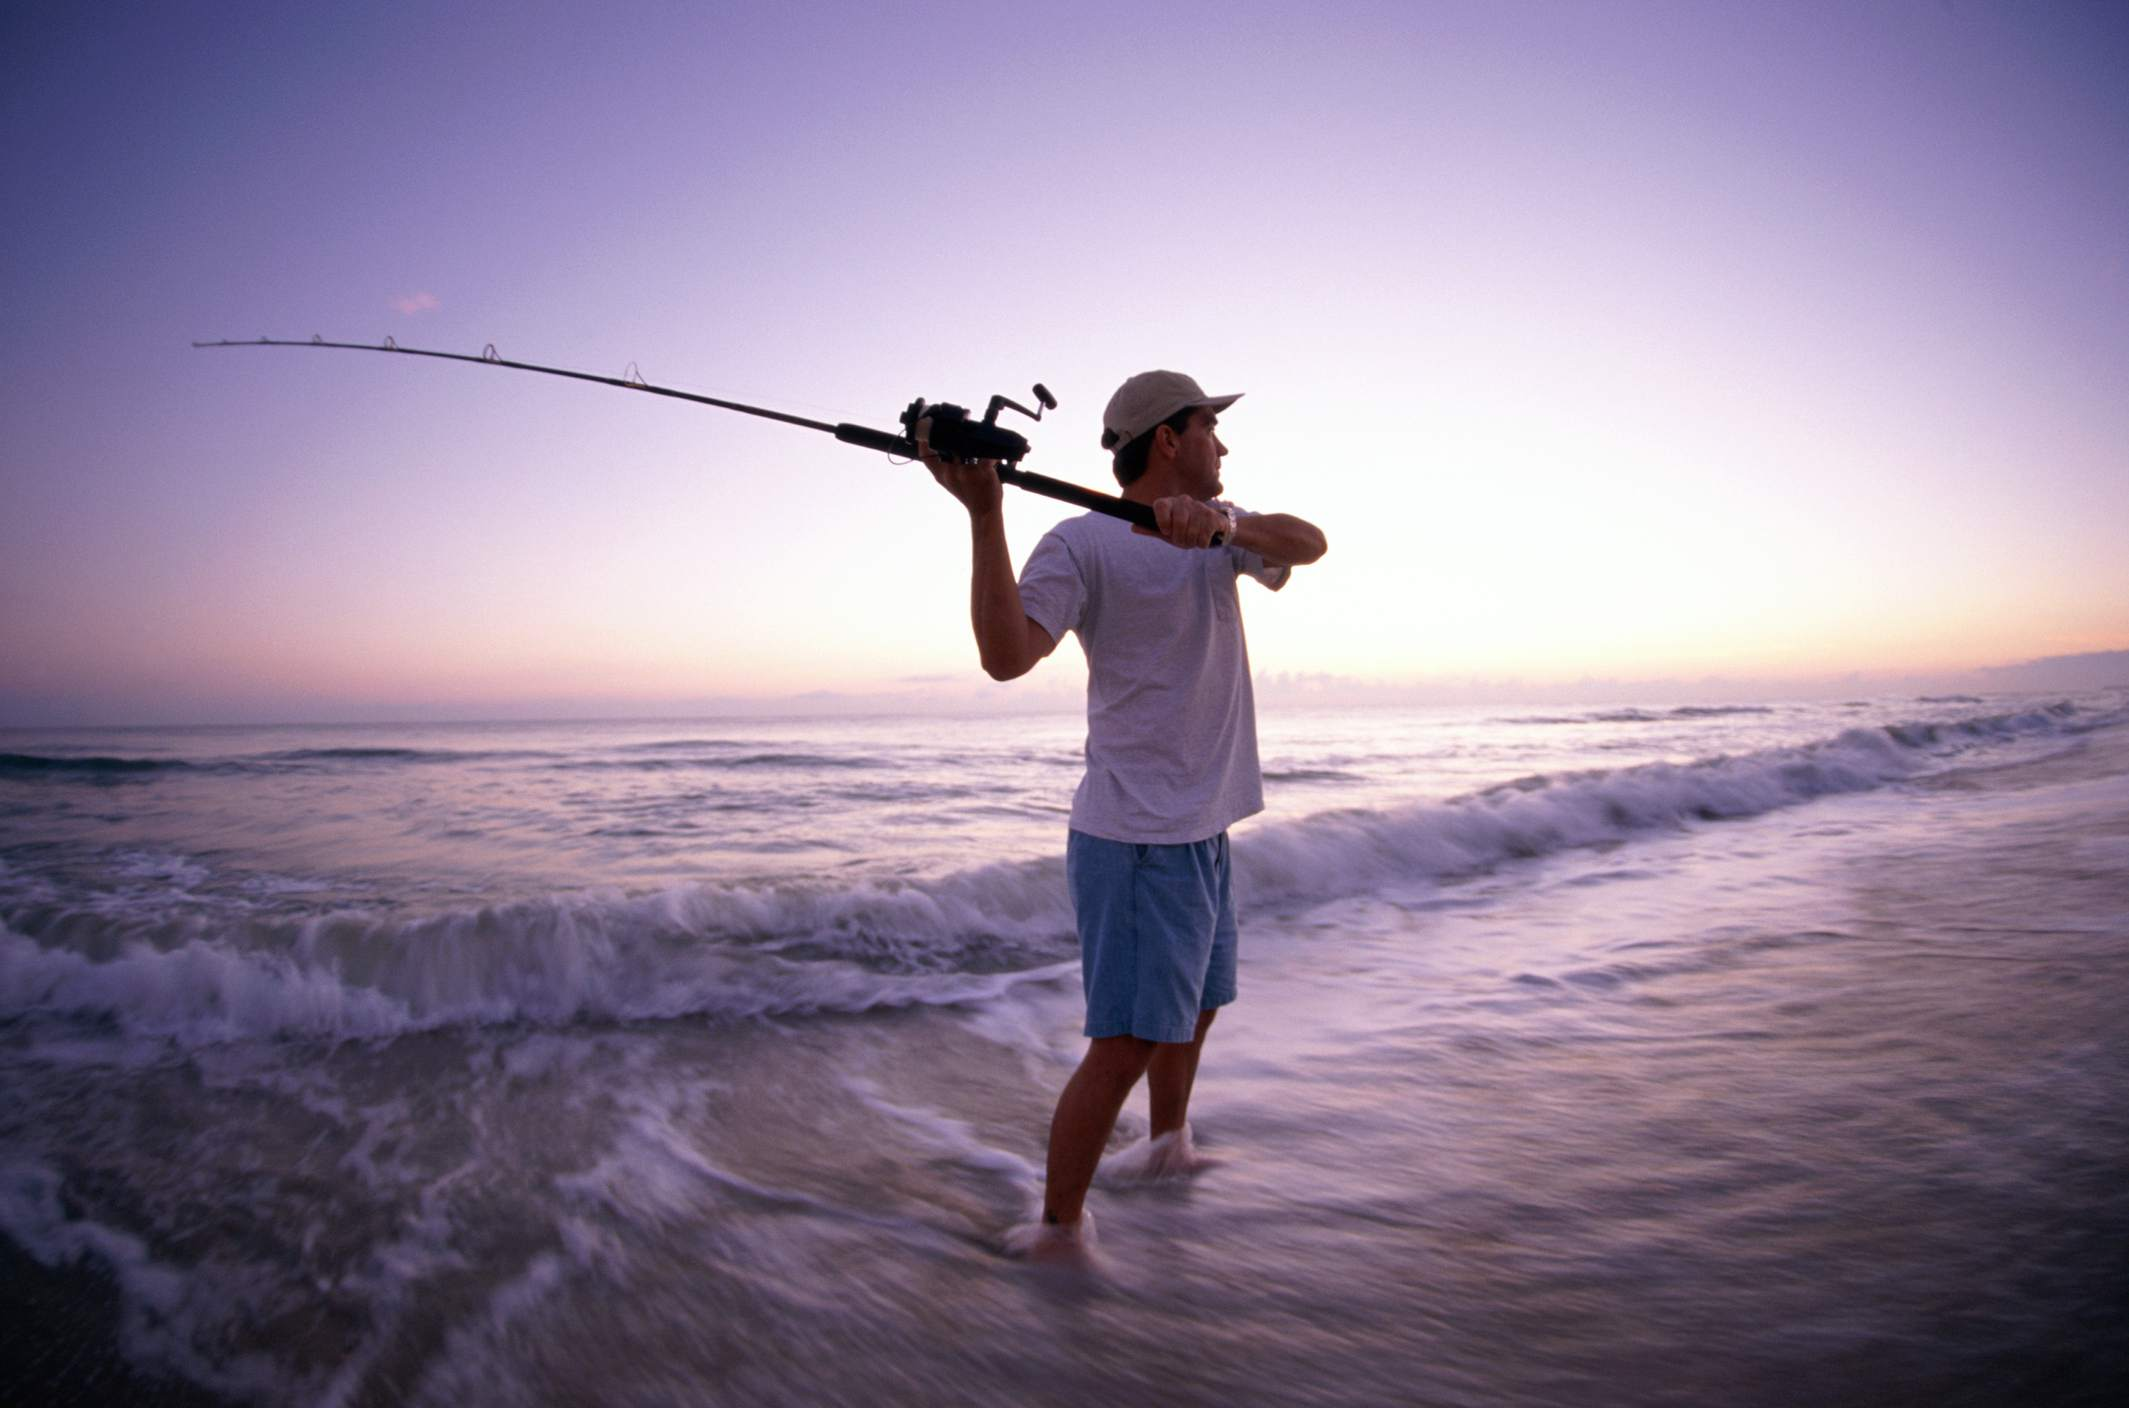 Fisherman casting from the beach